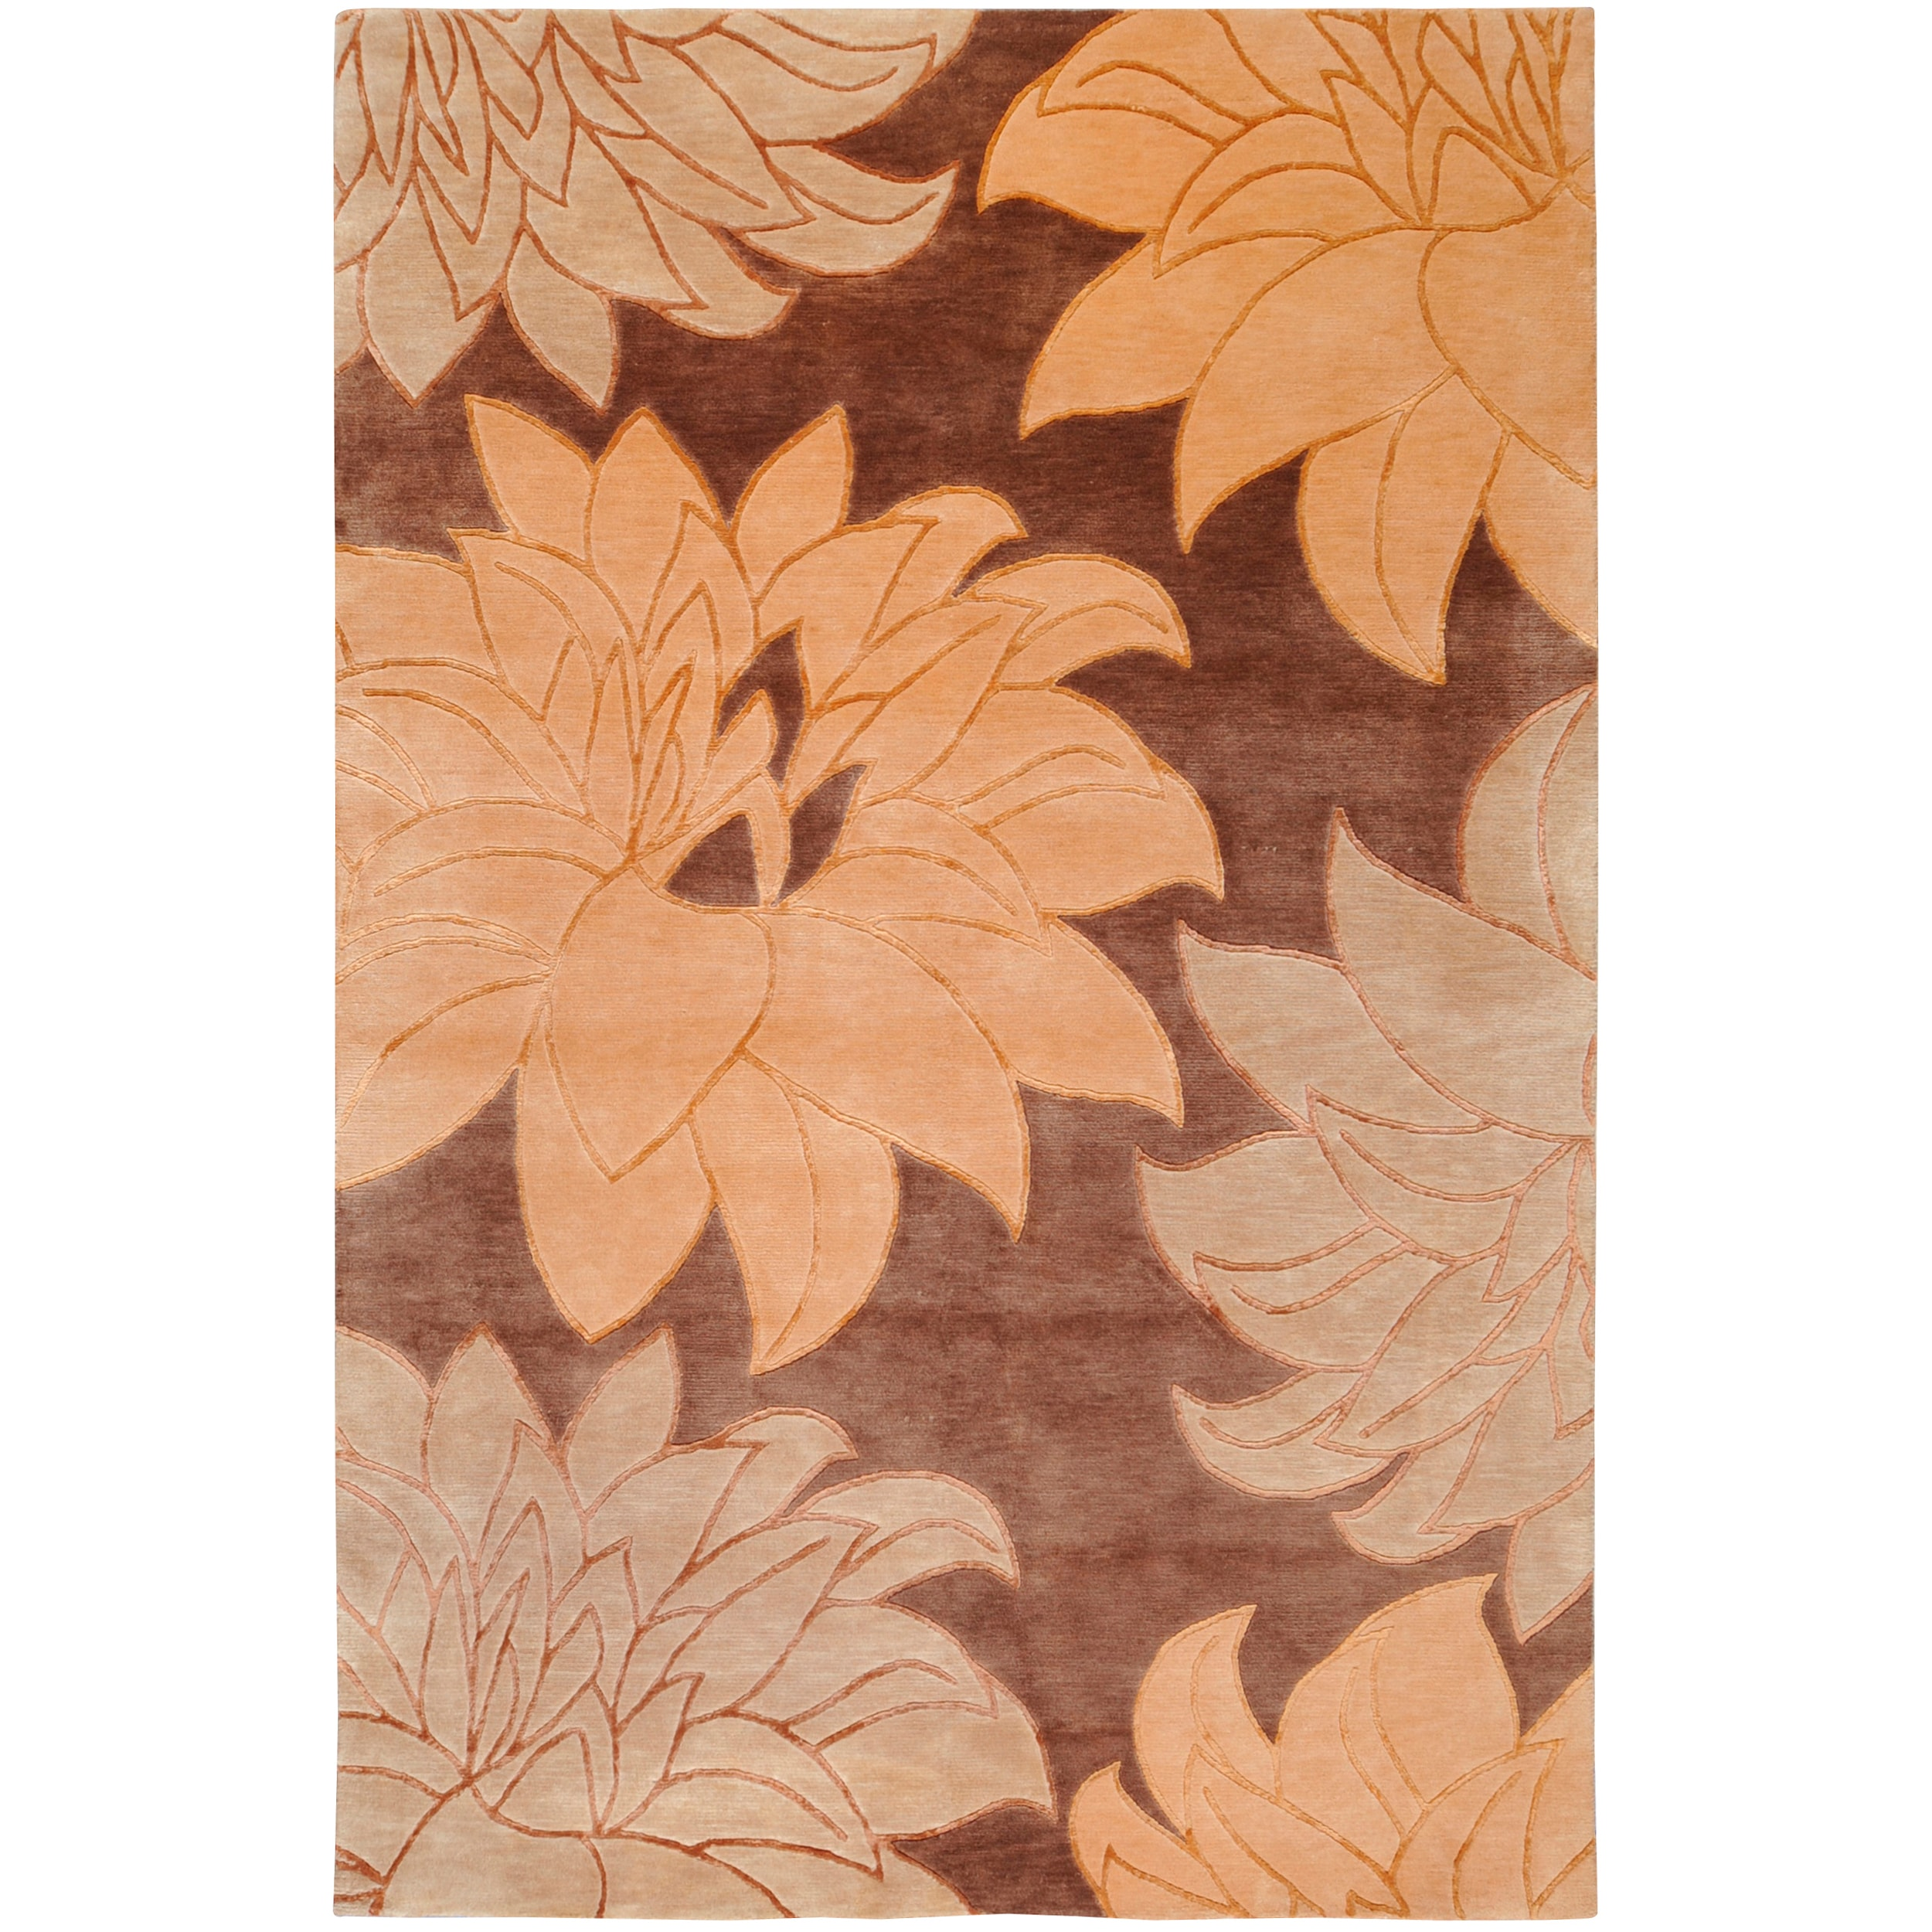 Hand-Knotted Multicolored La Crosse Semi-Worsted New Zealand Transitional Wool Area Rug (8' x 11')